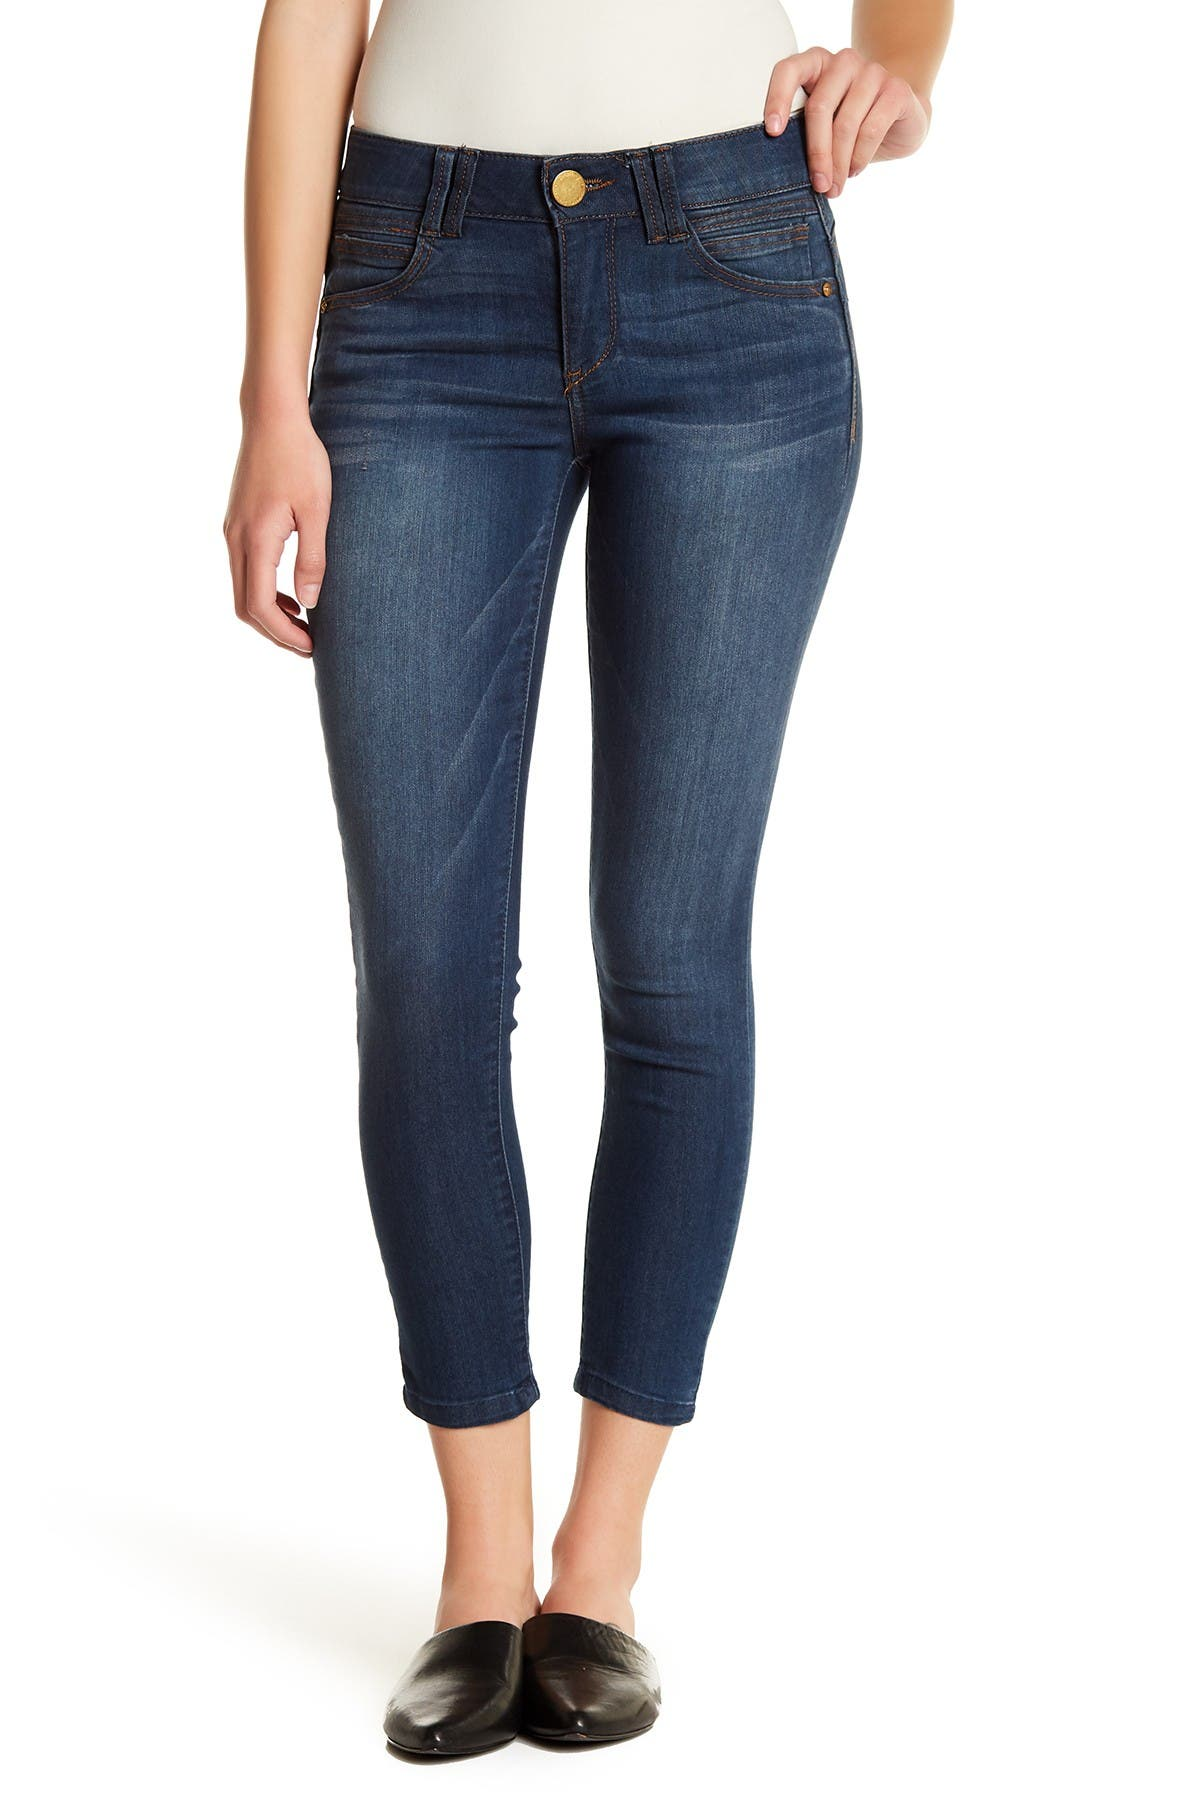 Image of Democracy Tummy Control Ankle Jeans